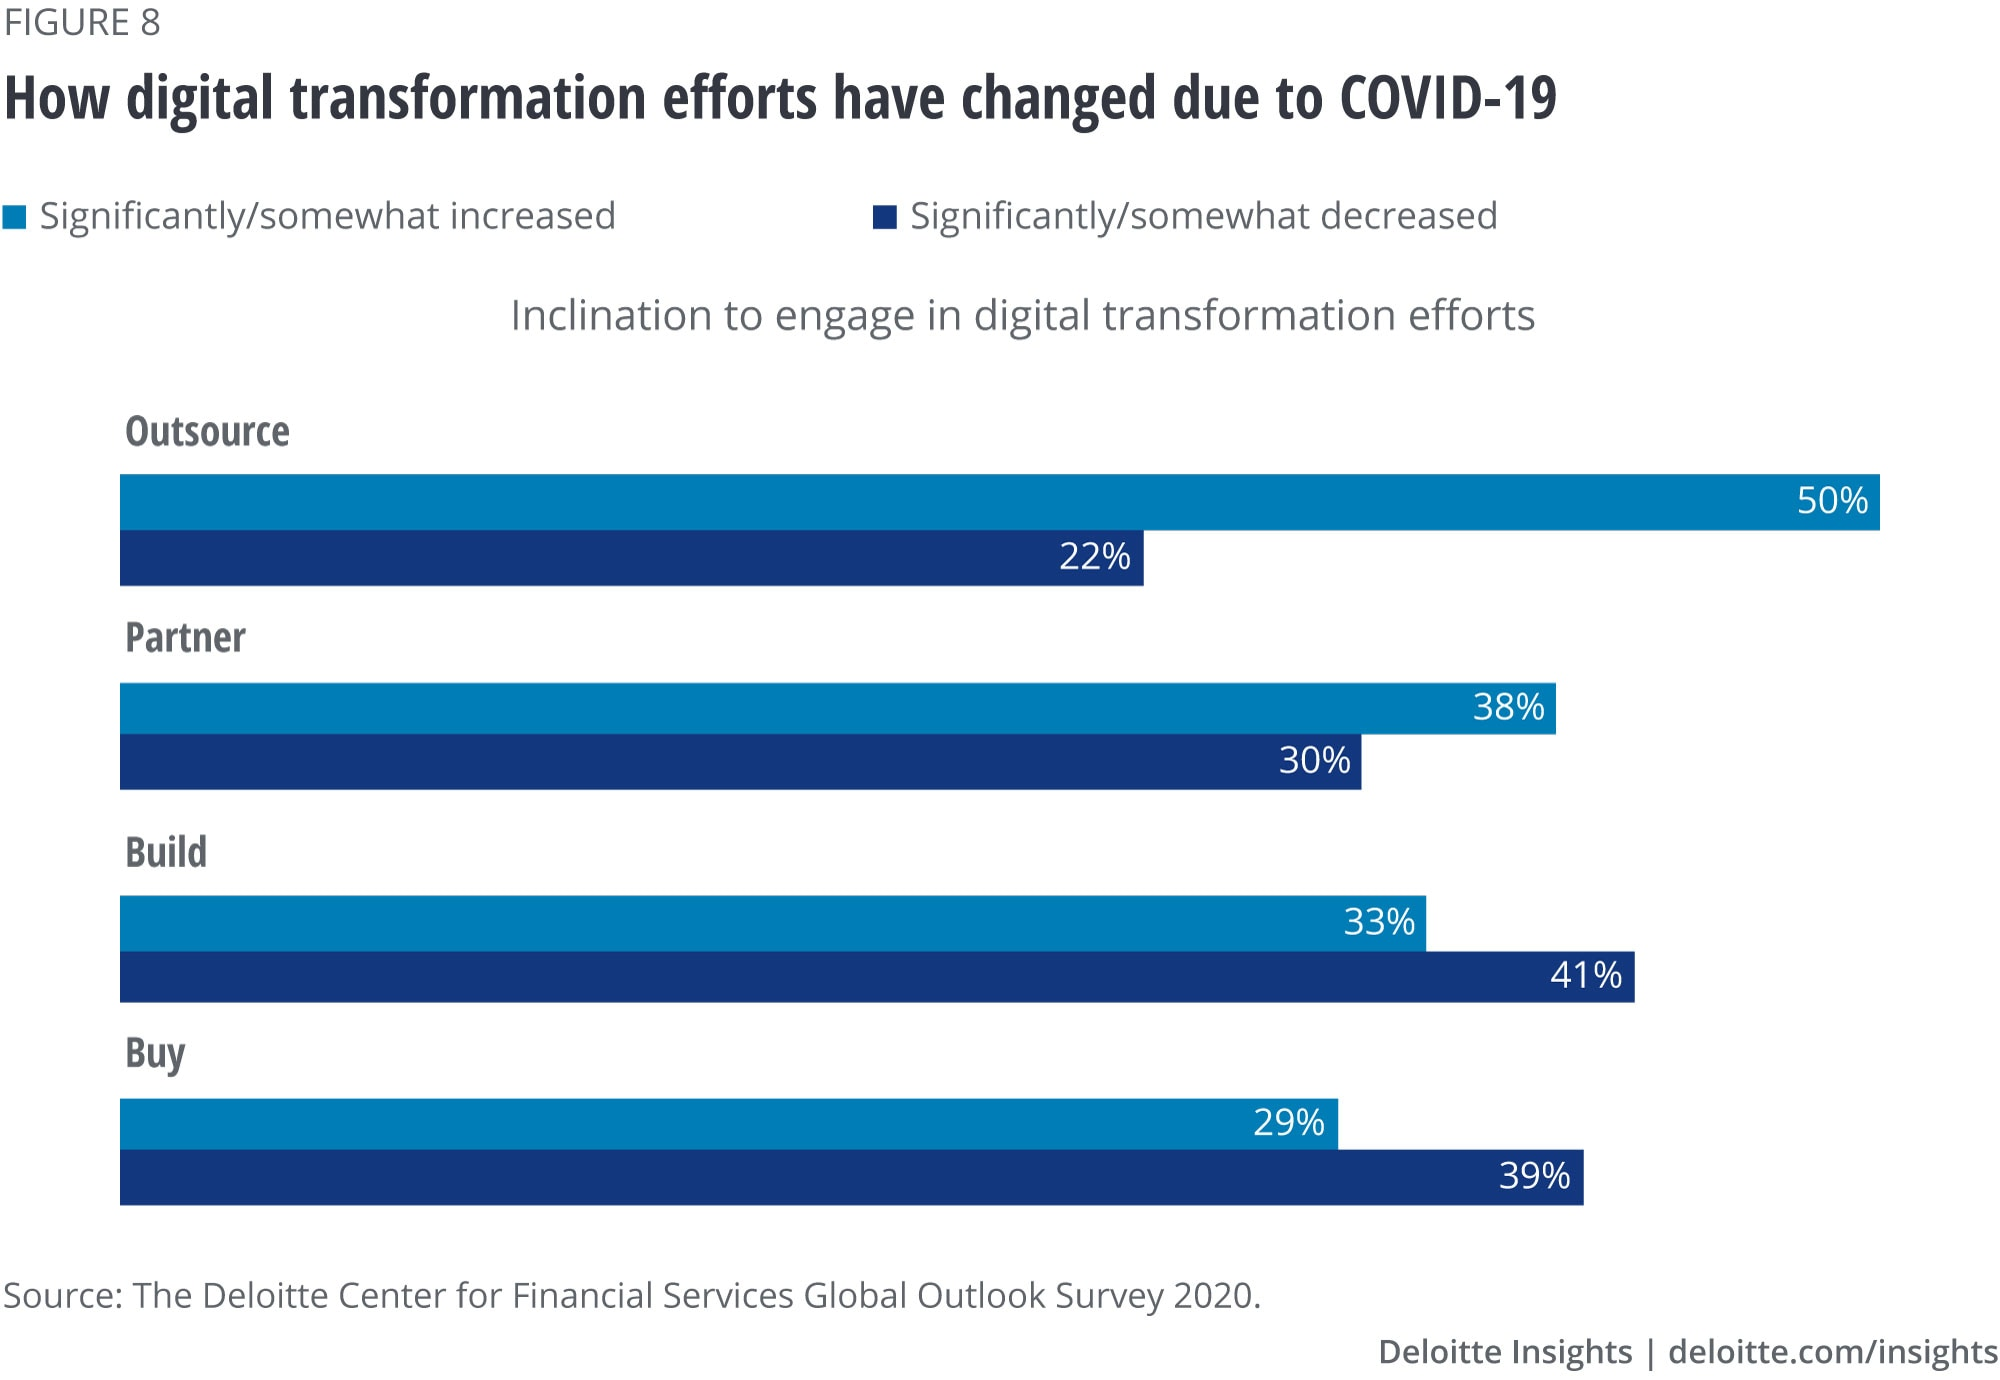 Changes in digital transformation efforts of respondents